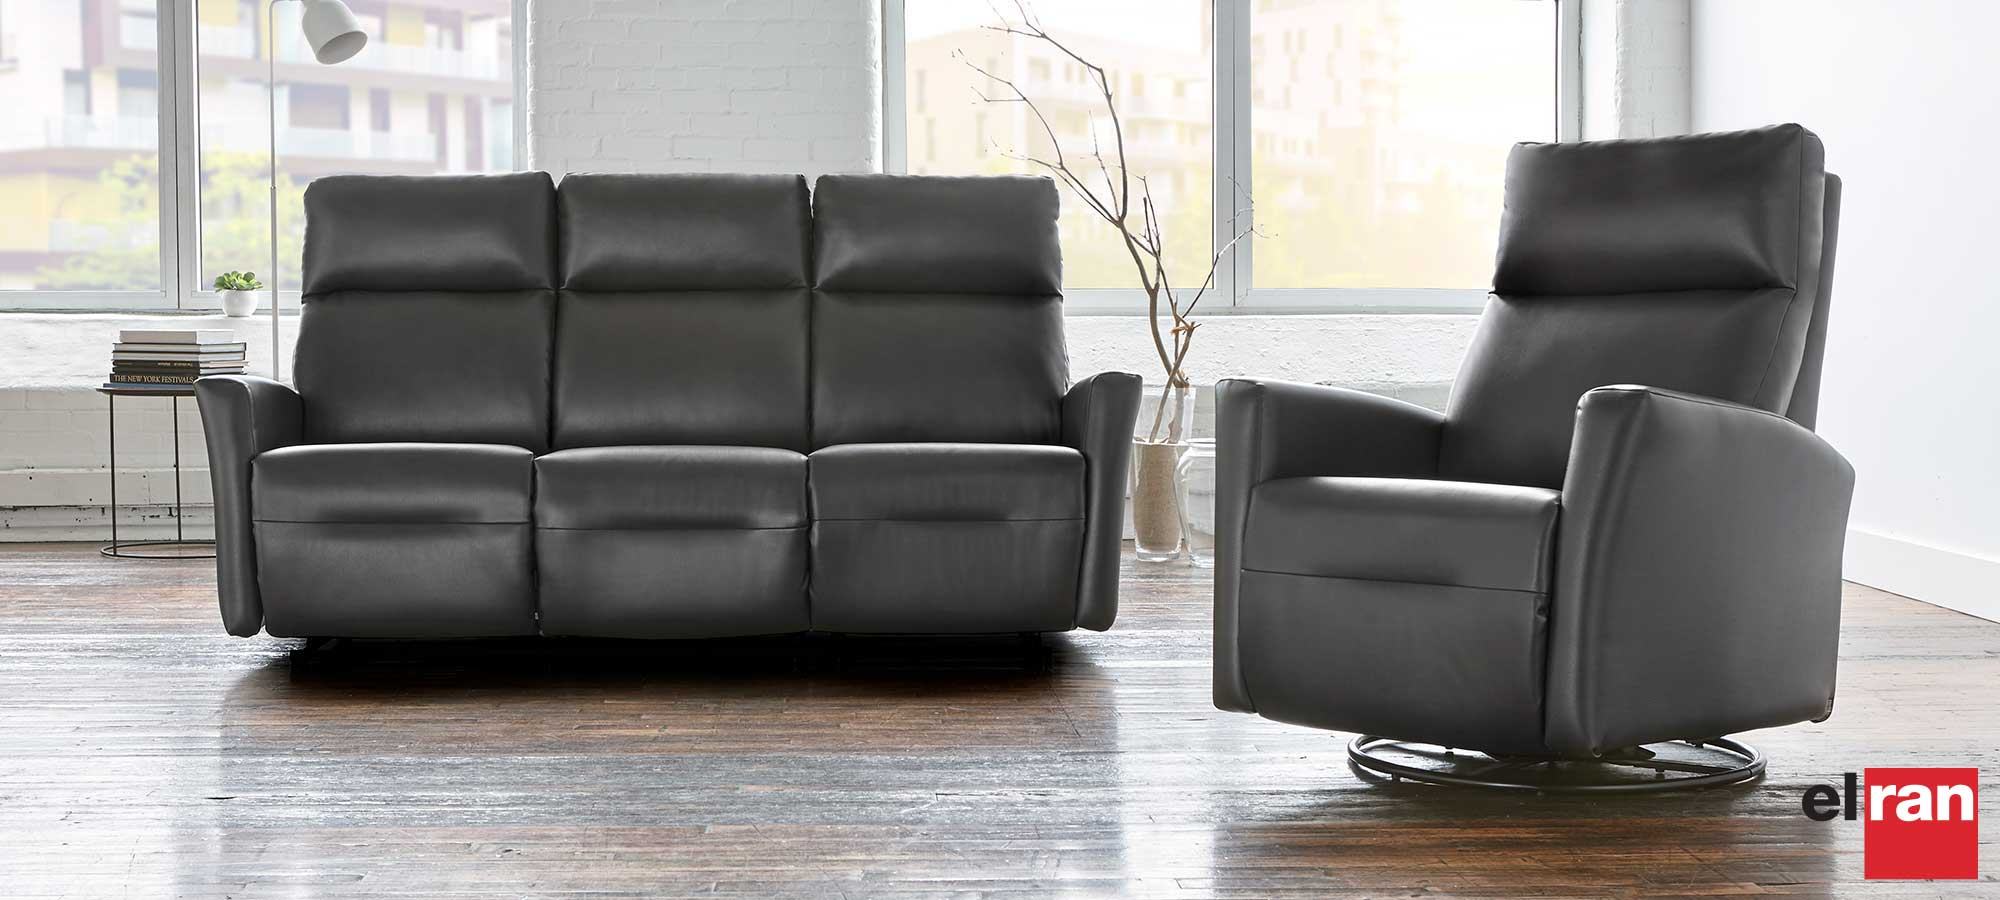 elran furniture recliners